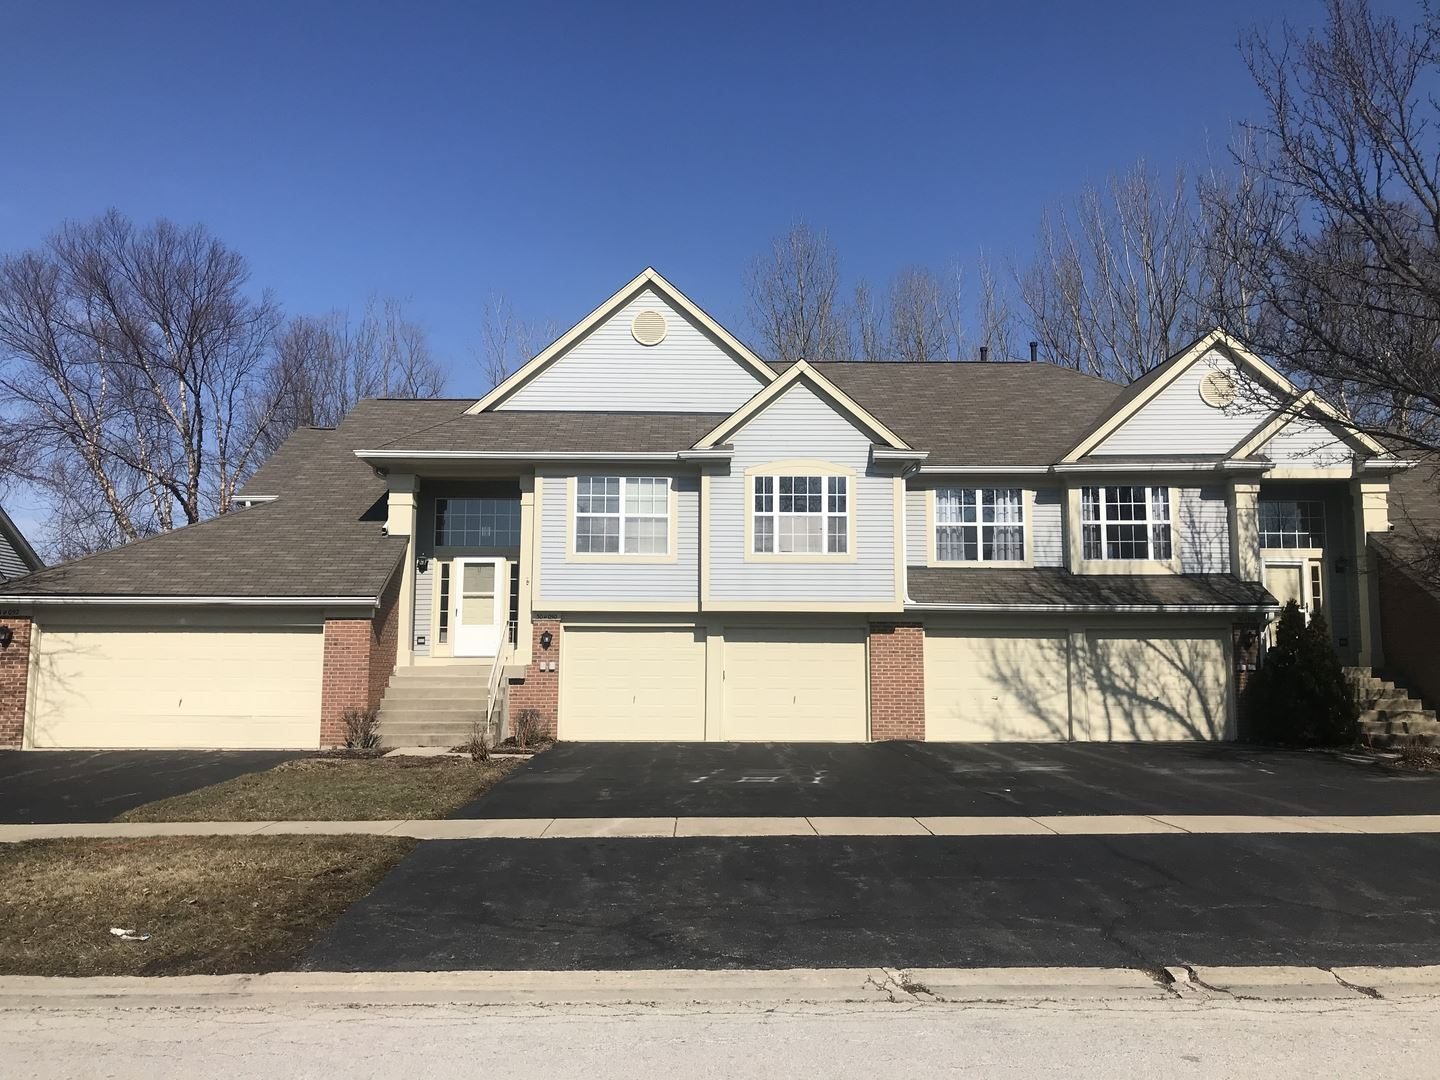 30W050 Willow Lane #30W050, Warrenville, IL 60555 - #: 10736419